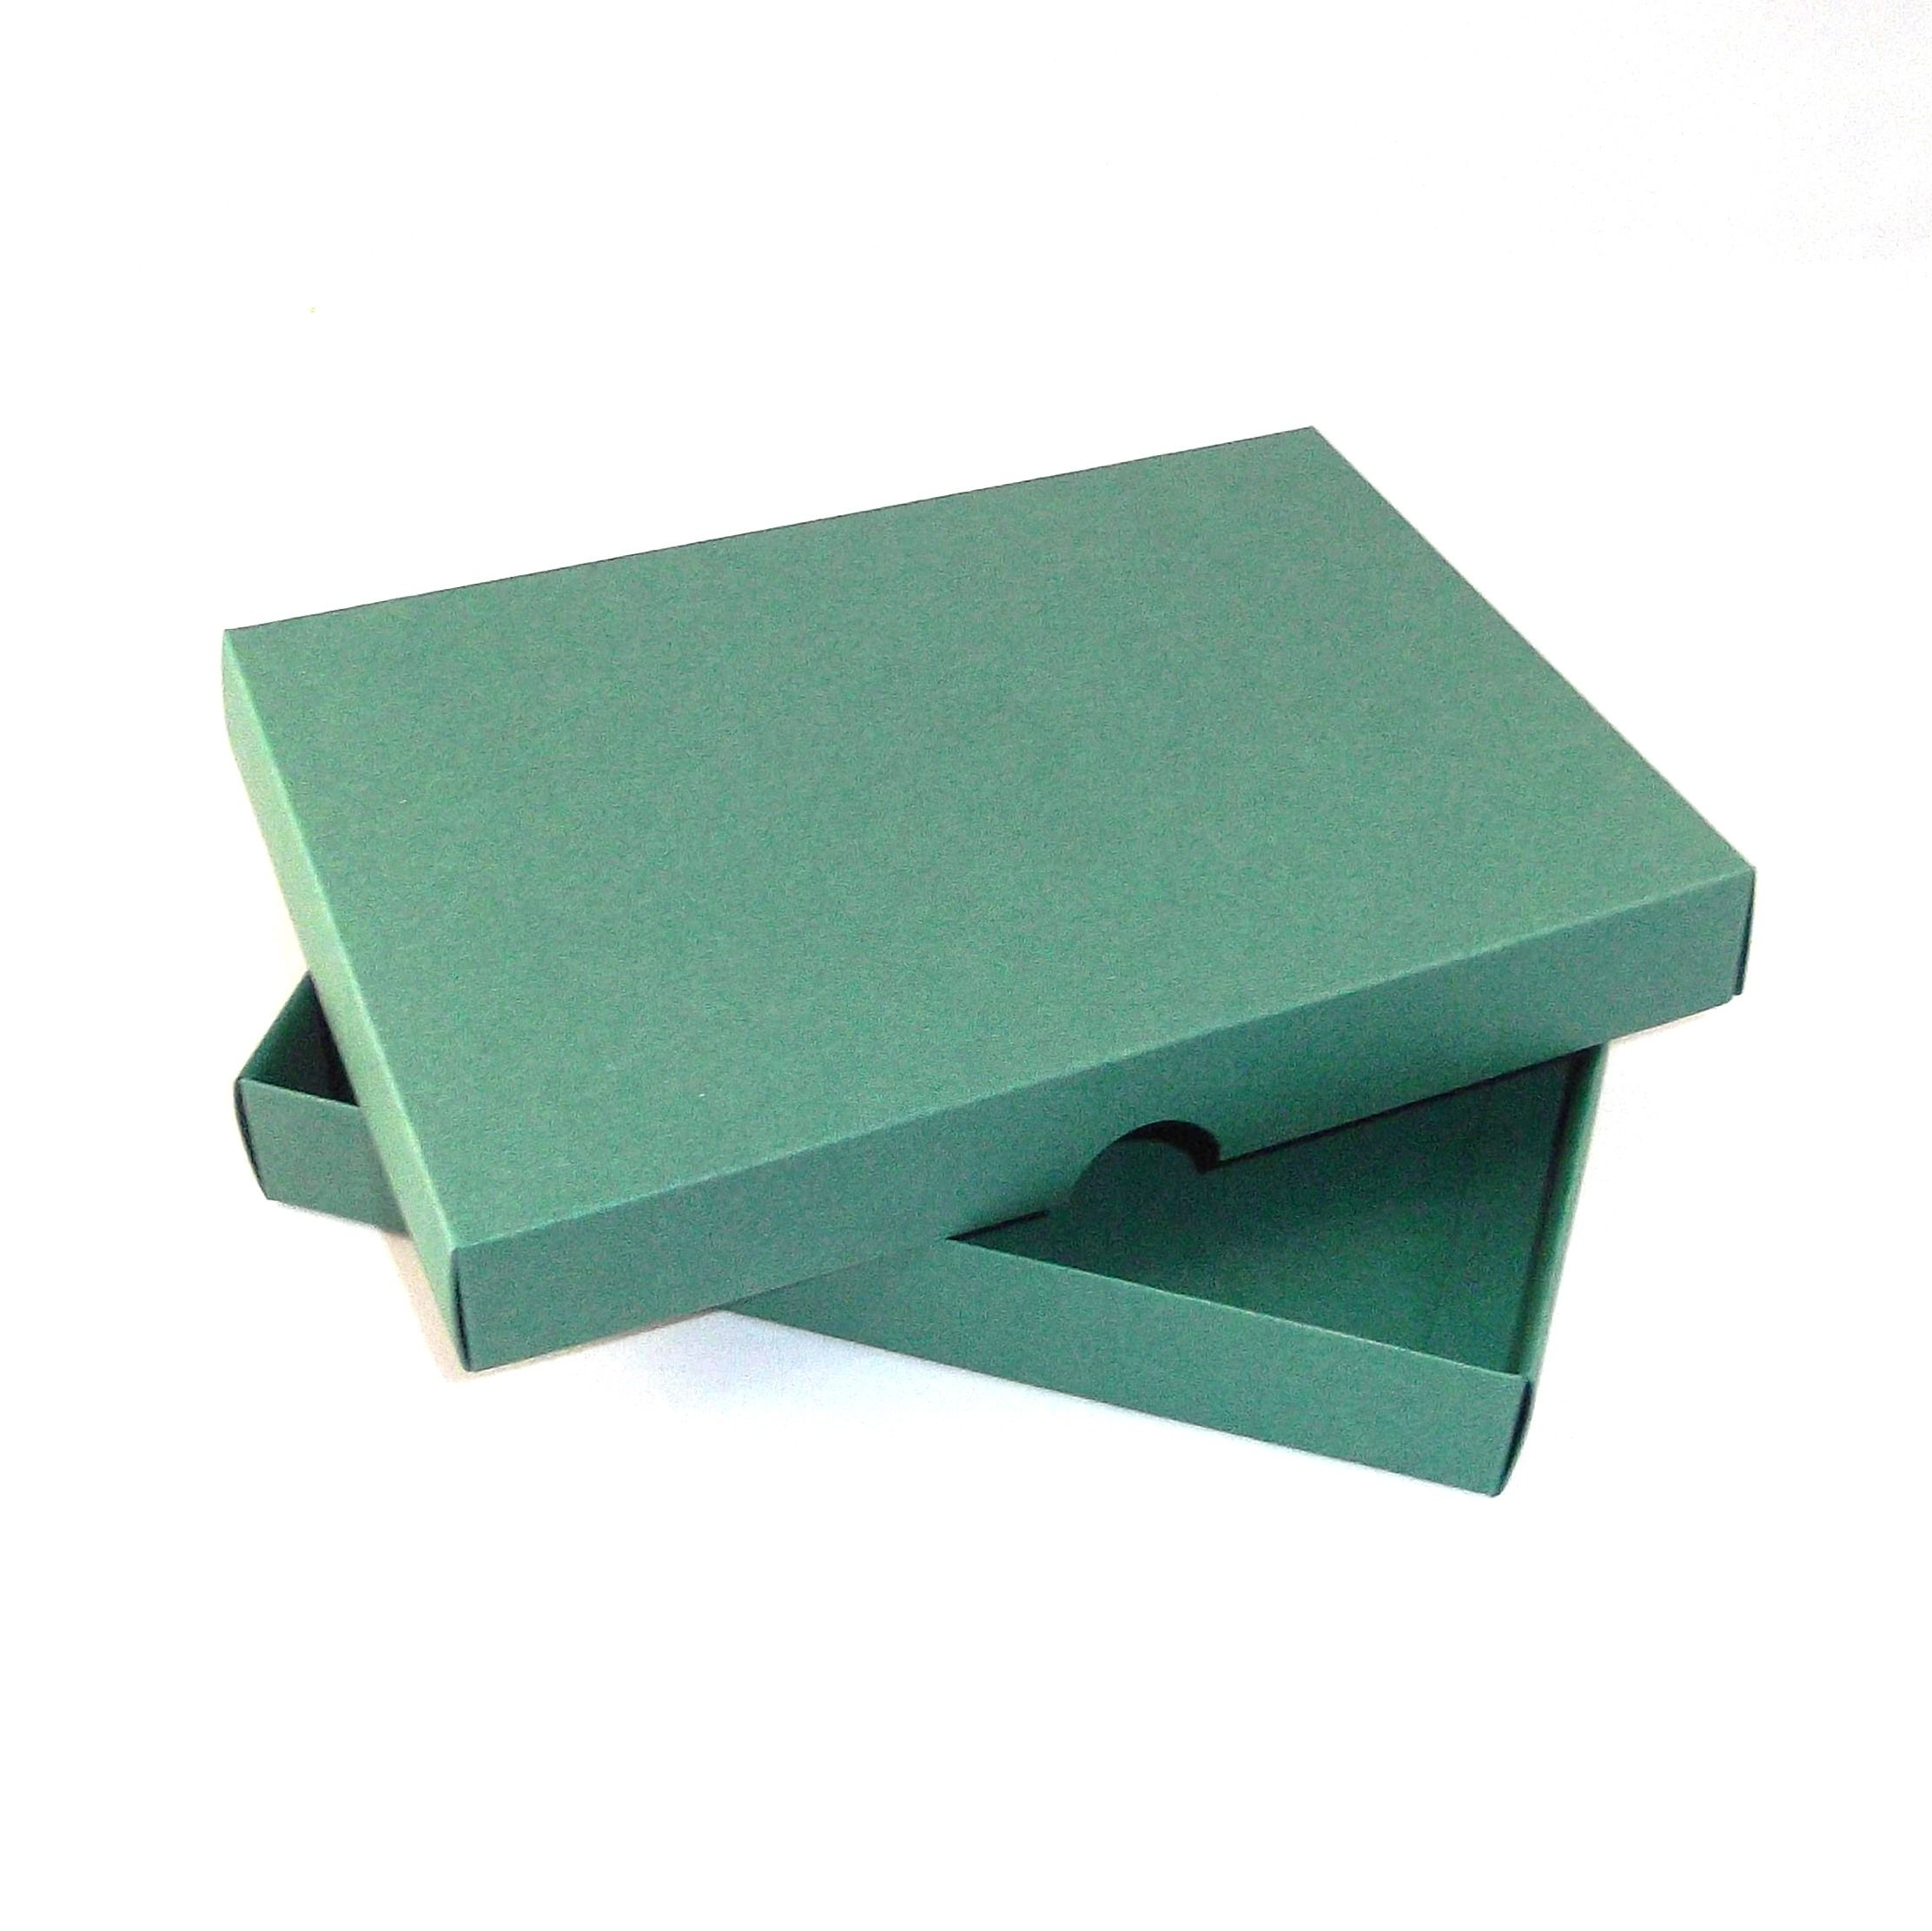 A4 Green Greeting Card Boxes For Handmade Cards